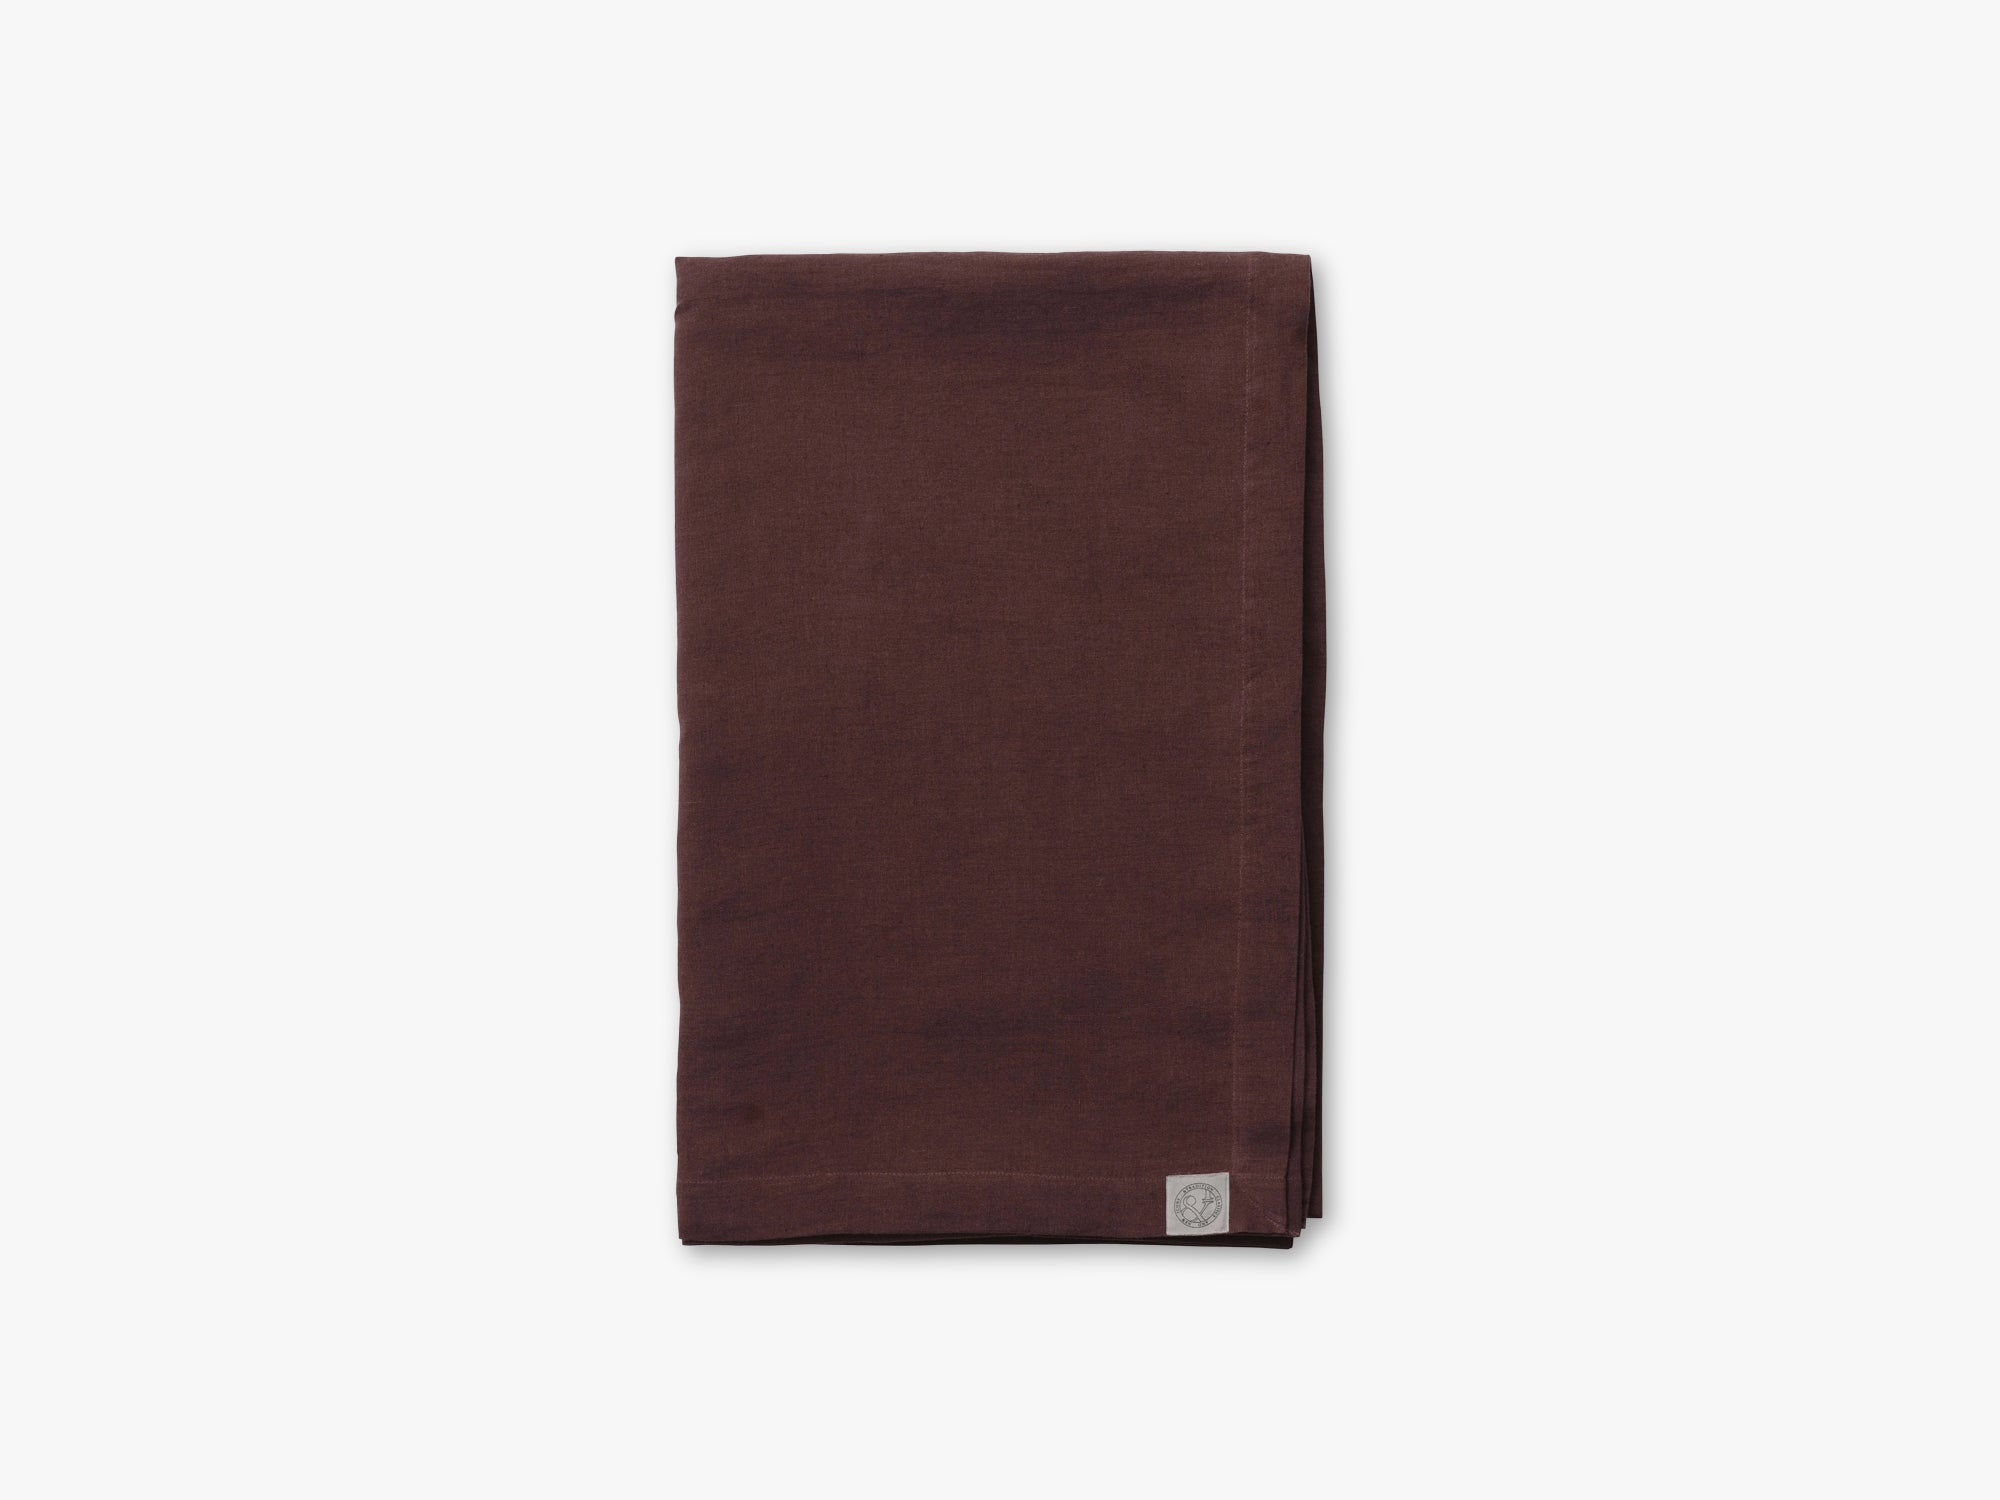 Collect Bedspread SC31, Burgundy/Linen fra &tradition